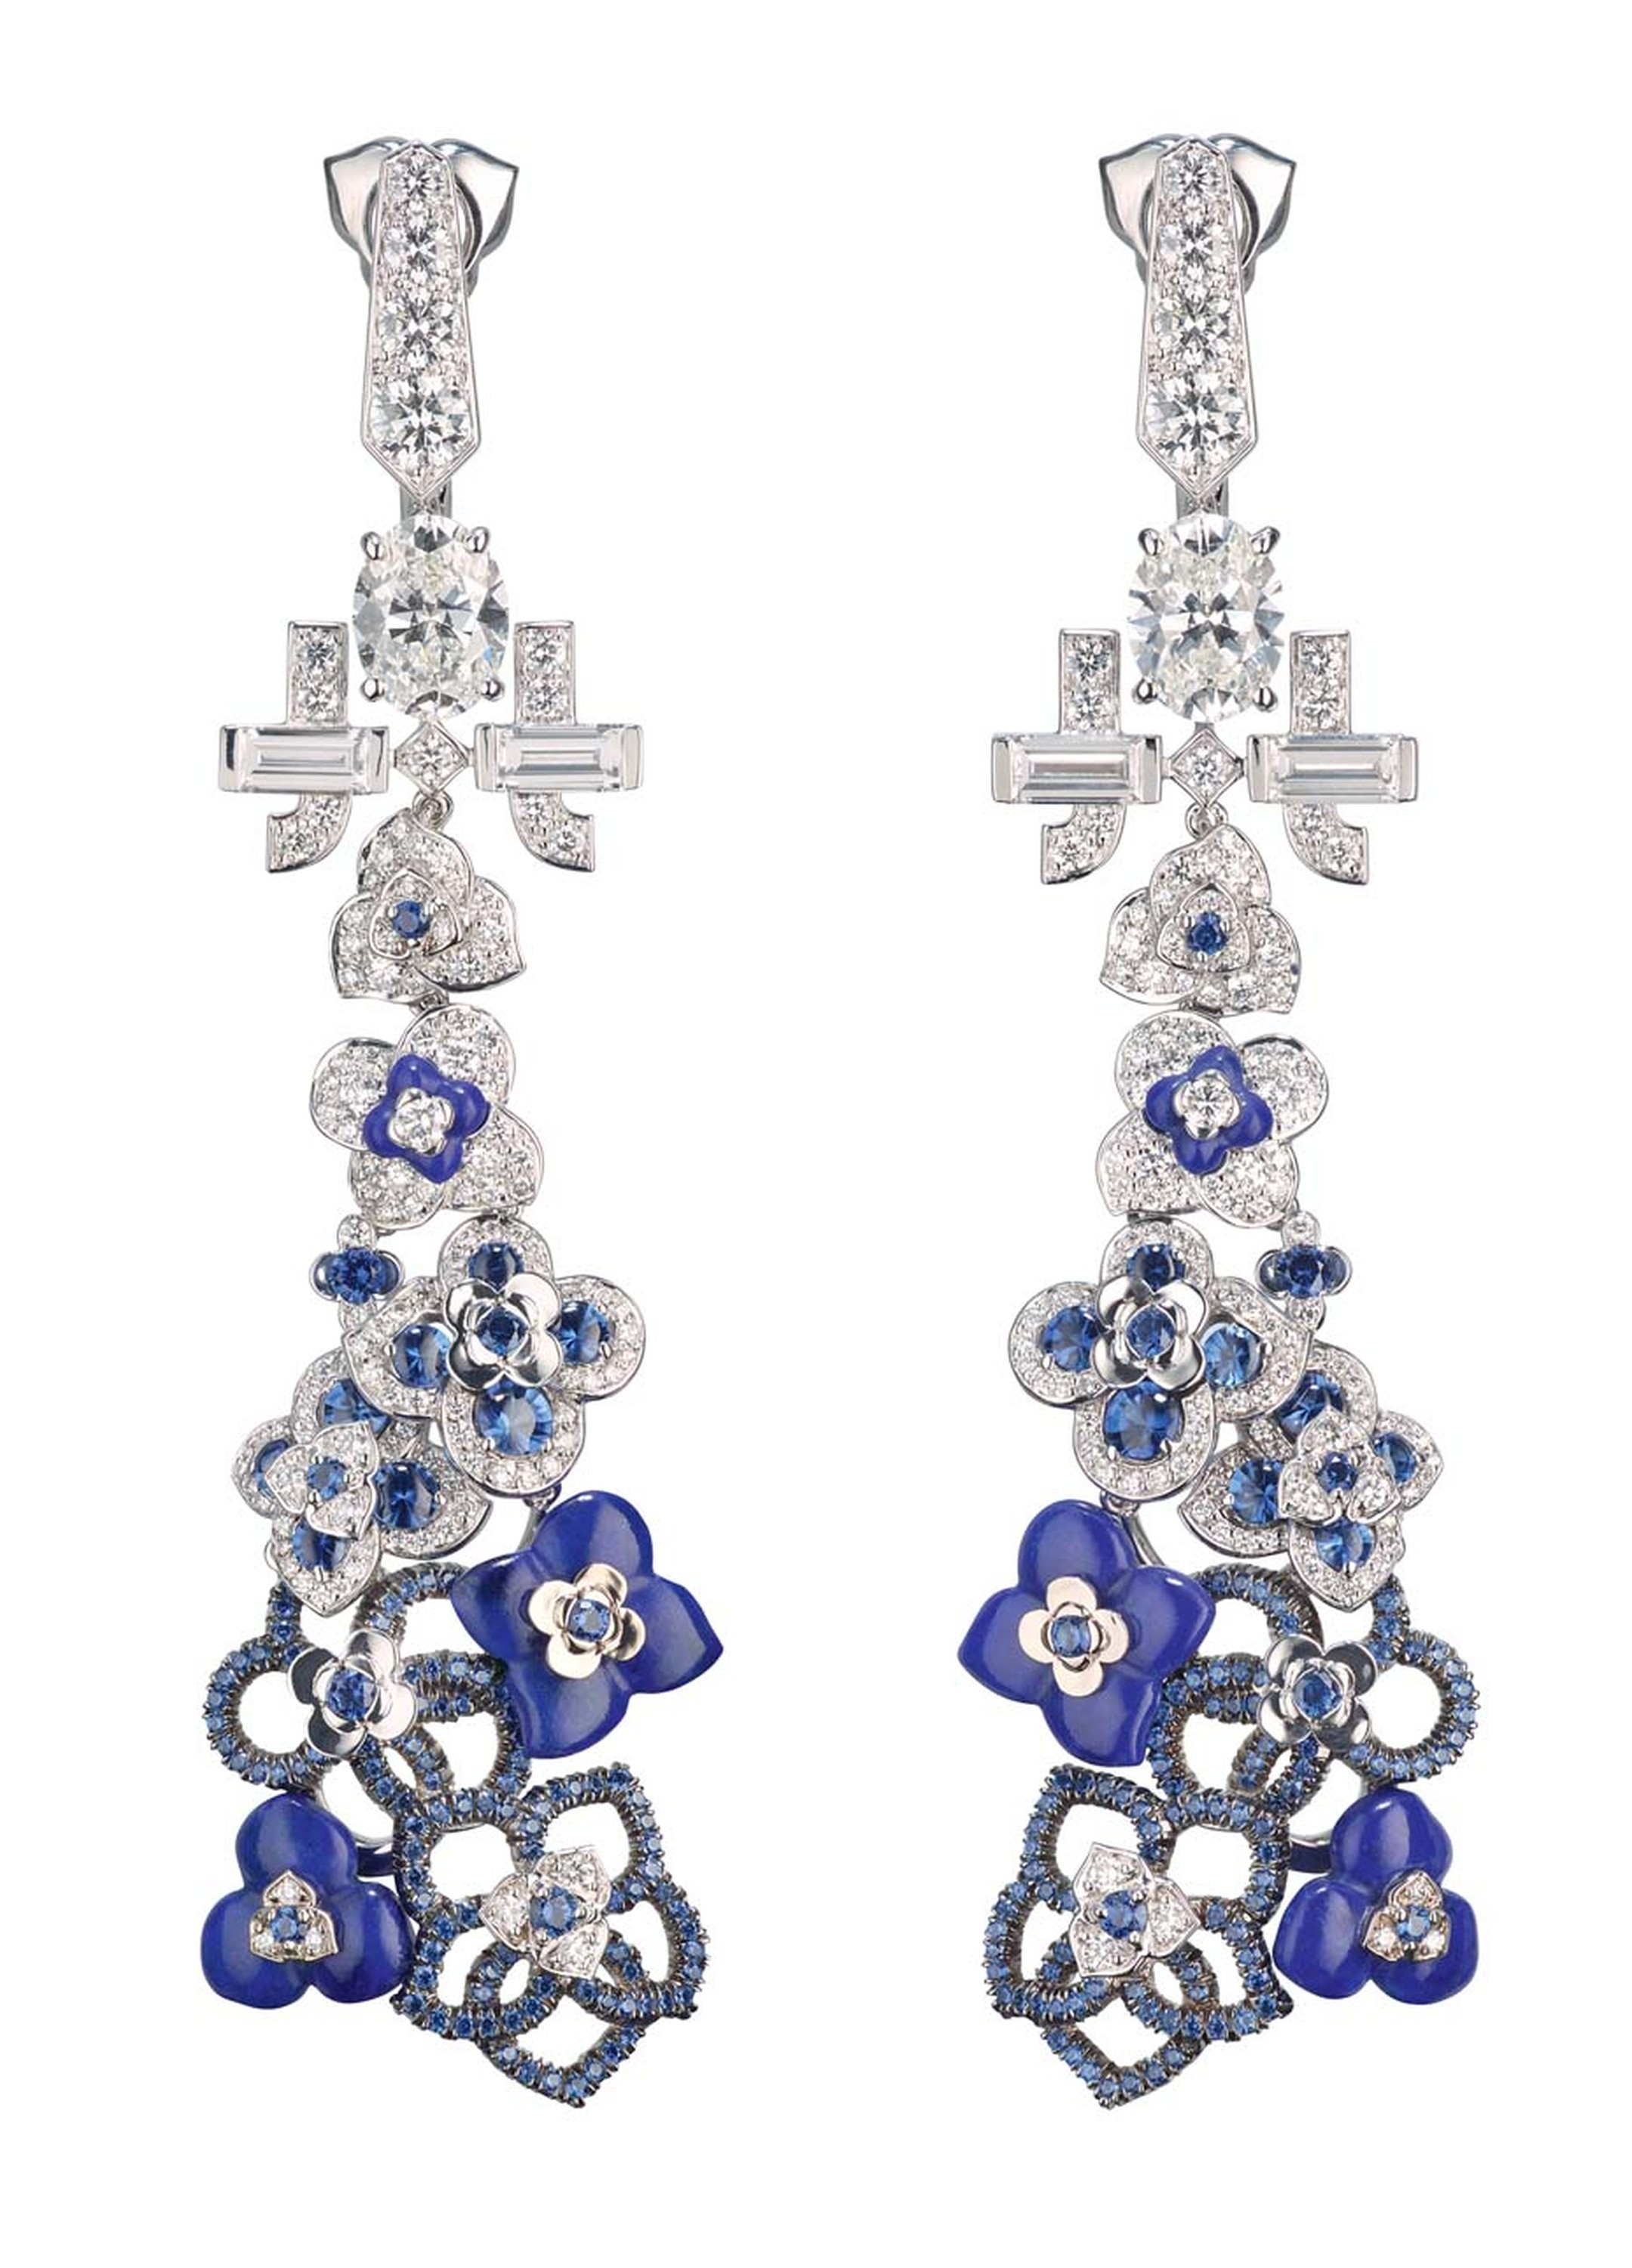 Chaumet Hortensia drop earrings, featuring blue sapphires and diamonds.